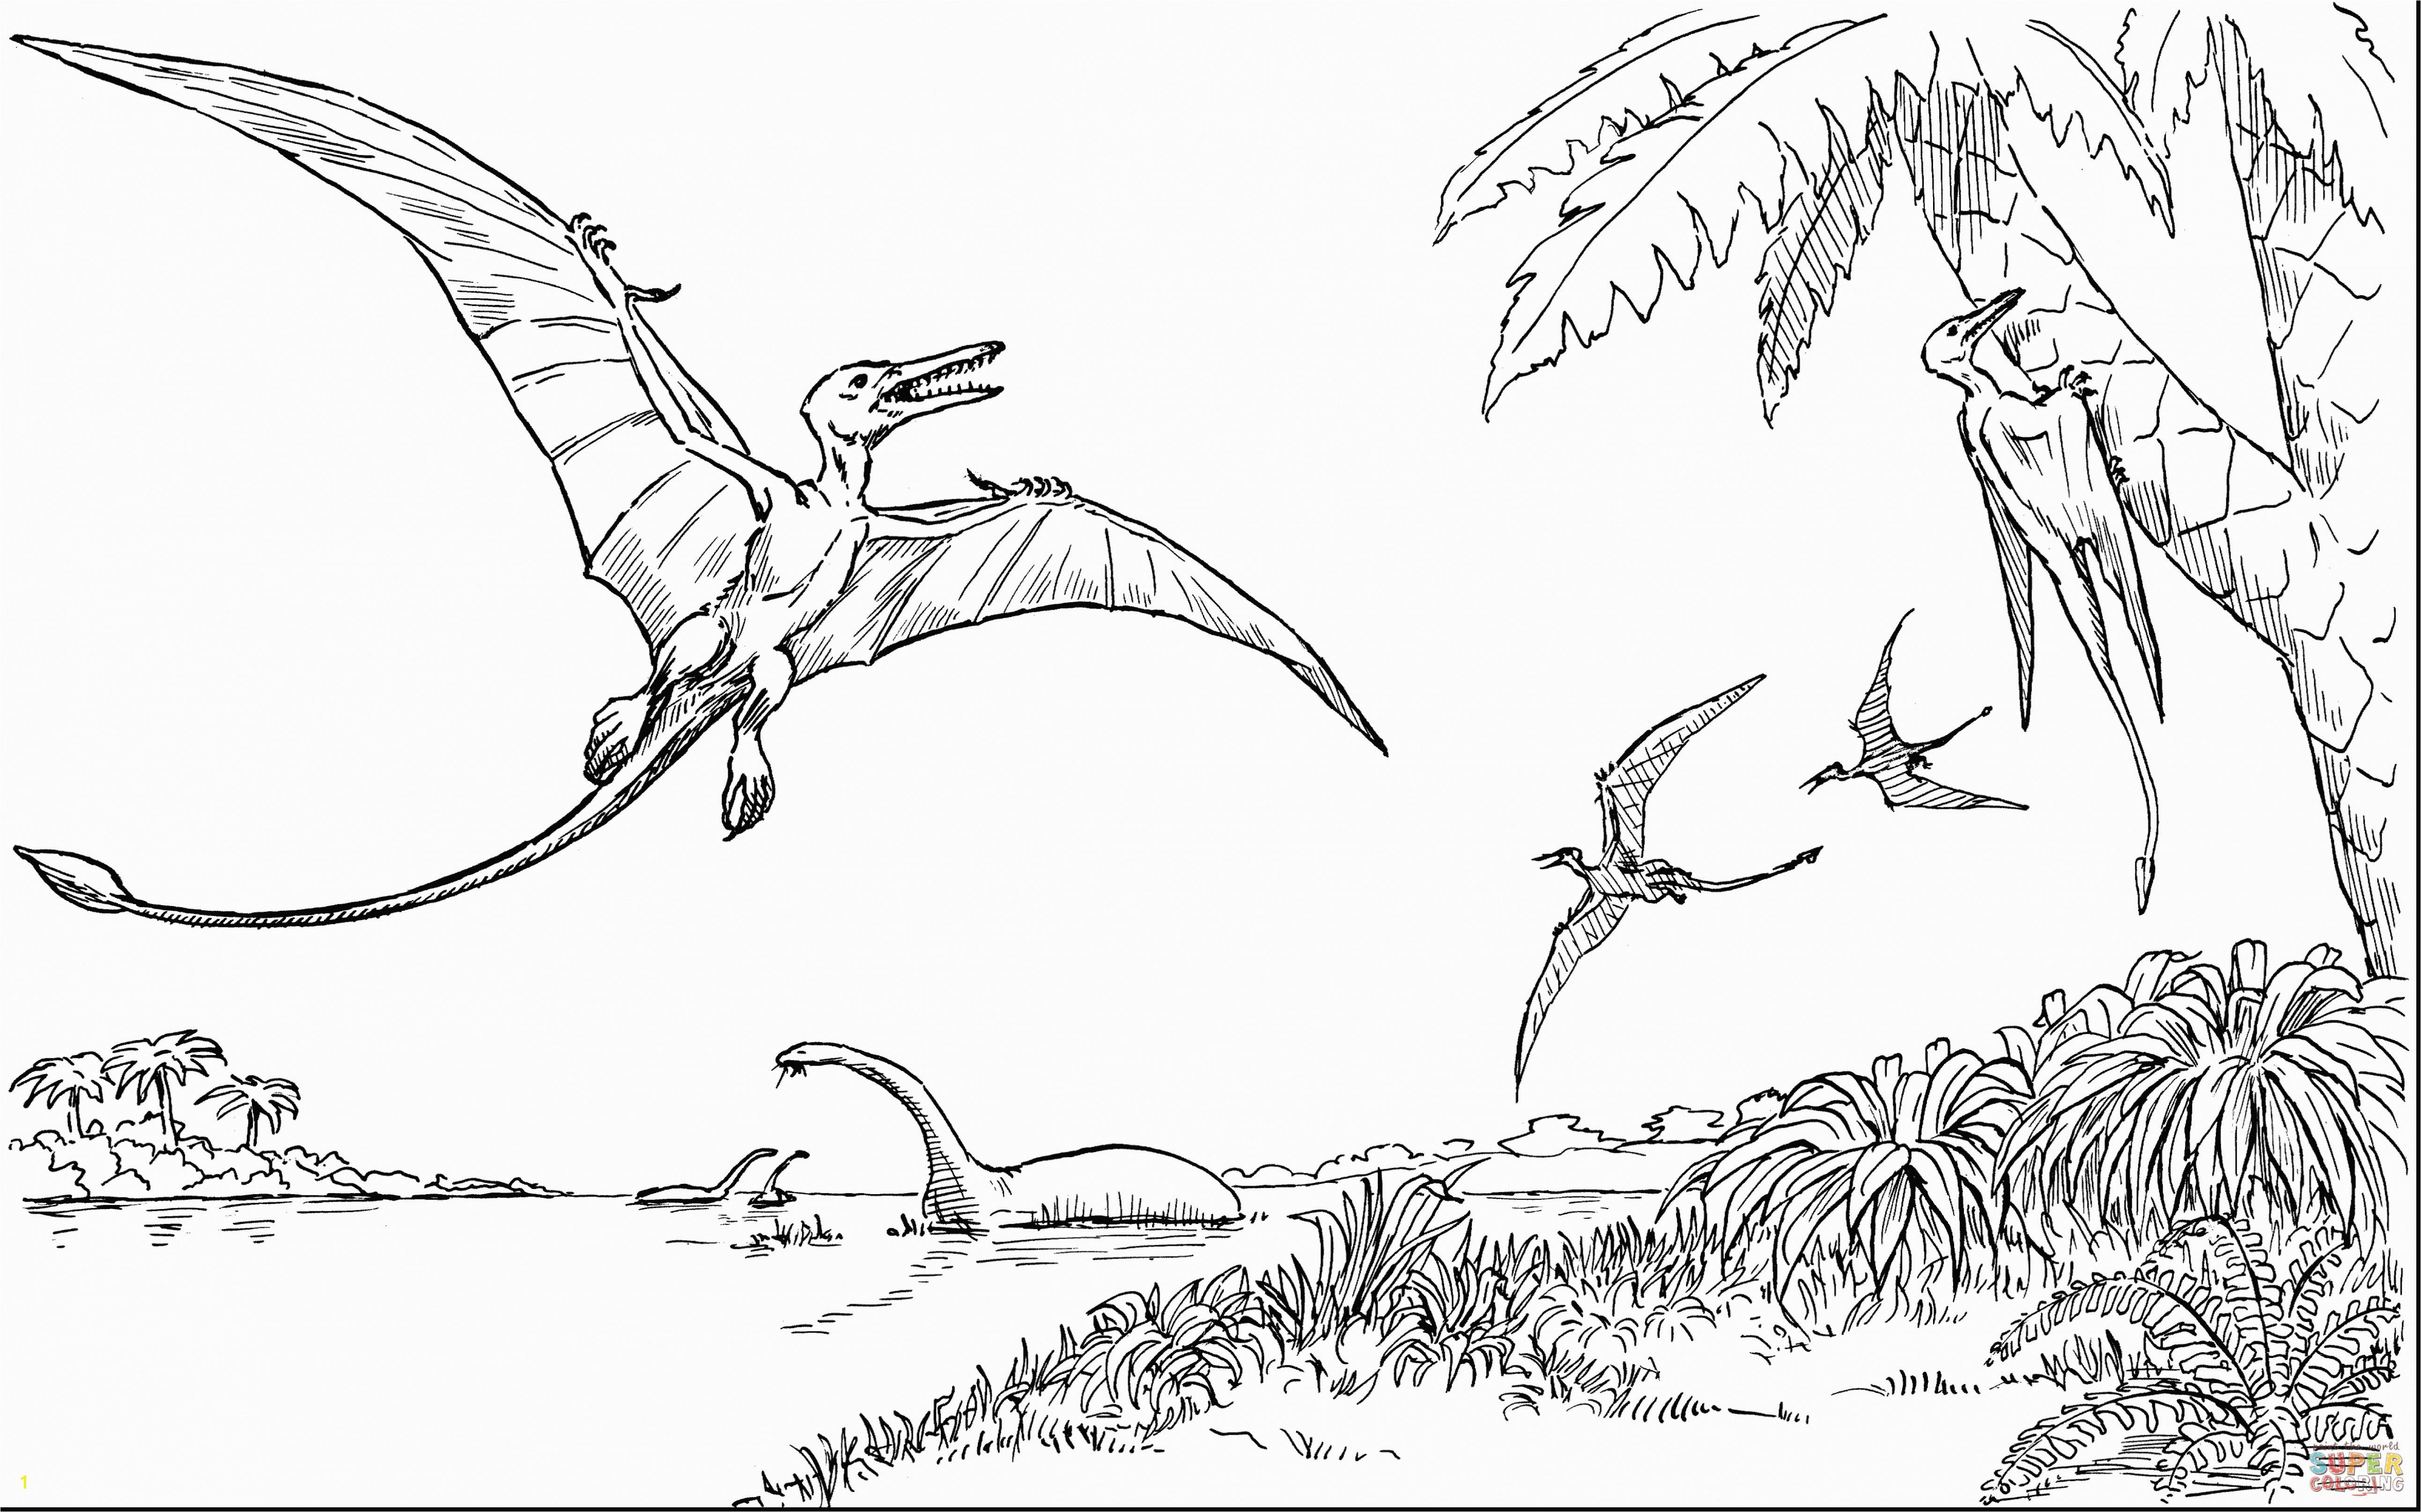 Jurassic World Coloring Pages Beautiful Velociraptor Coloring Pages Ebcs De D70e3 15 Inspirational Jurassic World